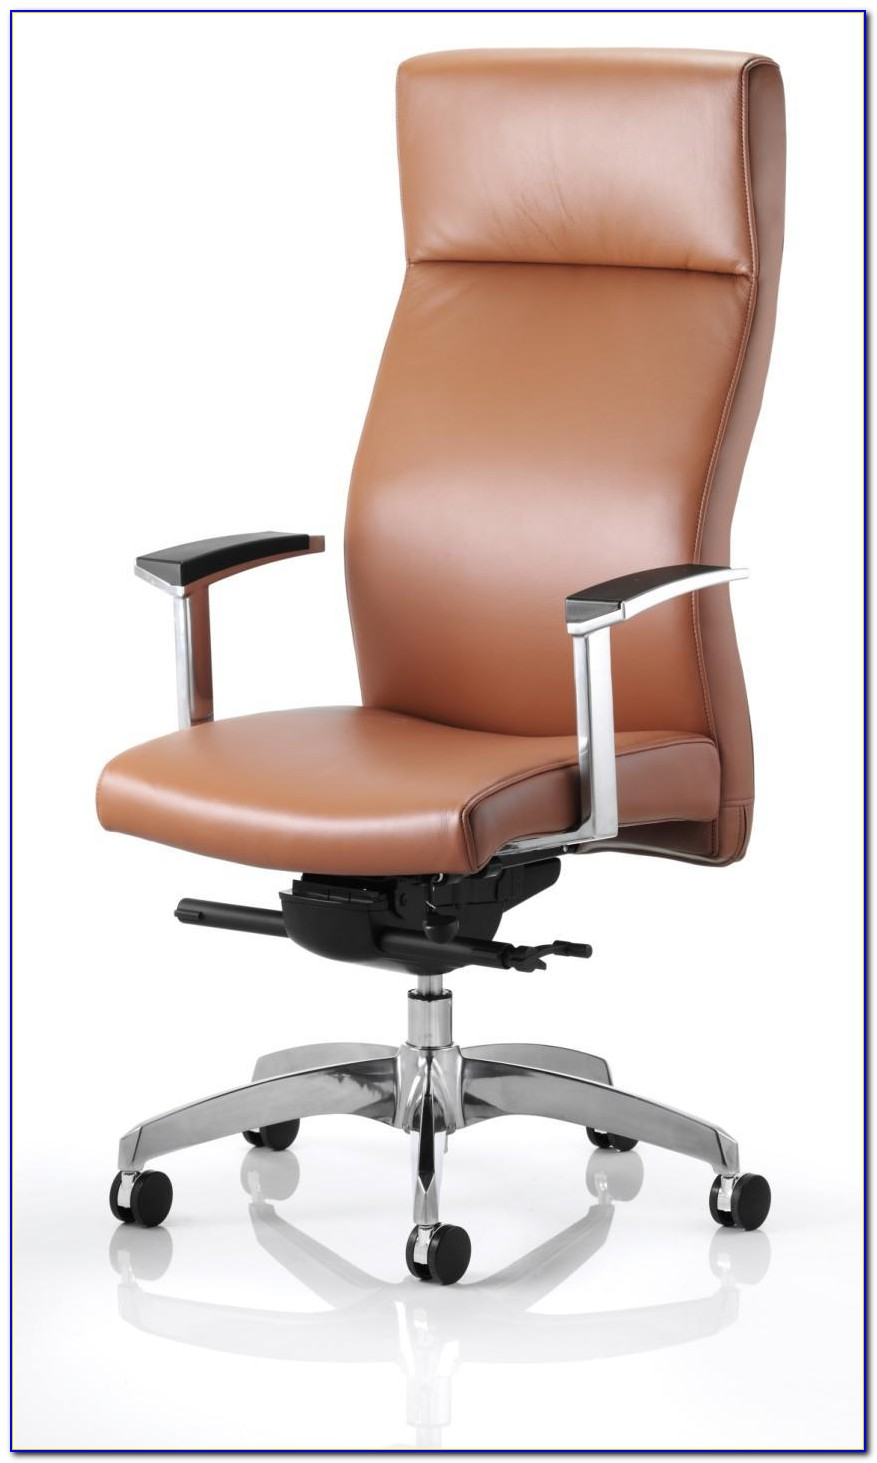 Executive Leather Office Chairs Brisbane